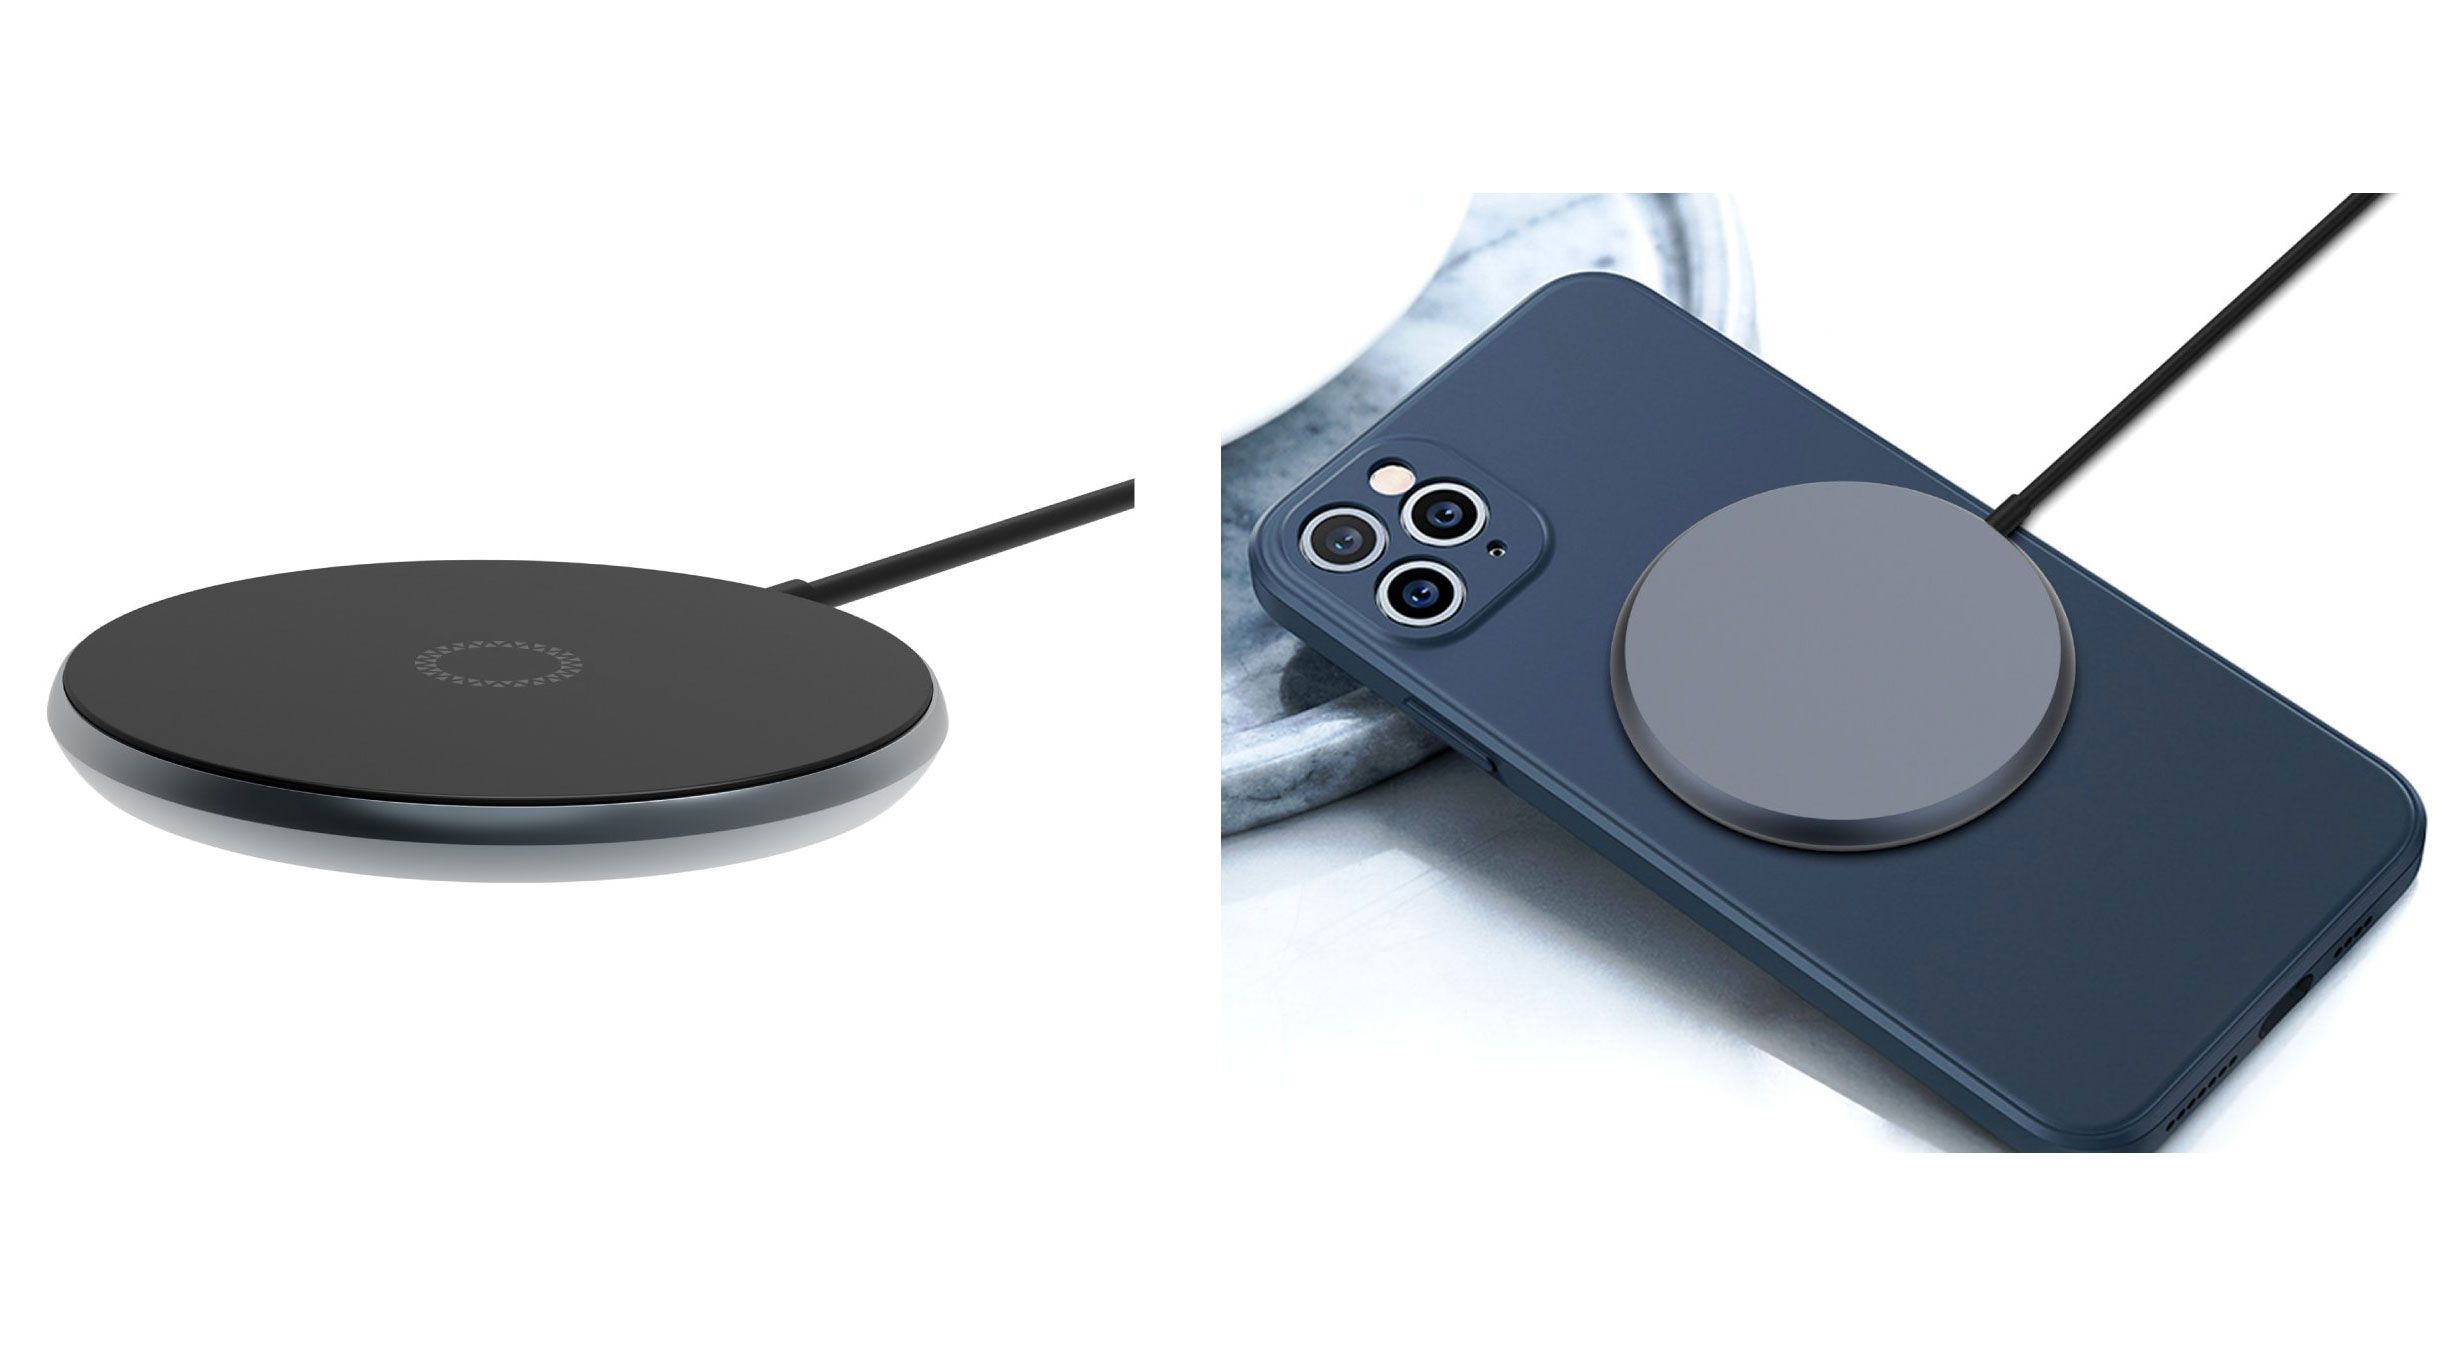 Magnetically Attached iPhone 12 Wireless Charger Unveiled Ahead of Apple Event – MacRumors